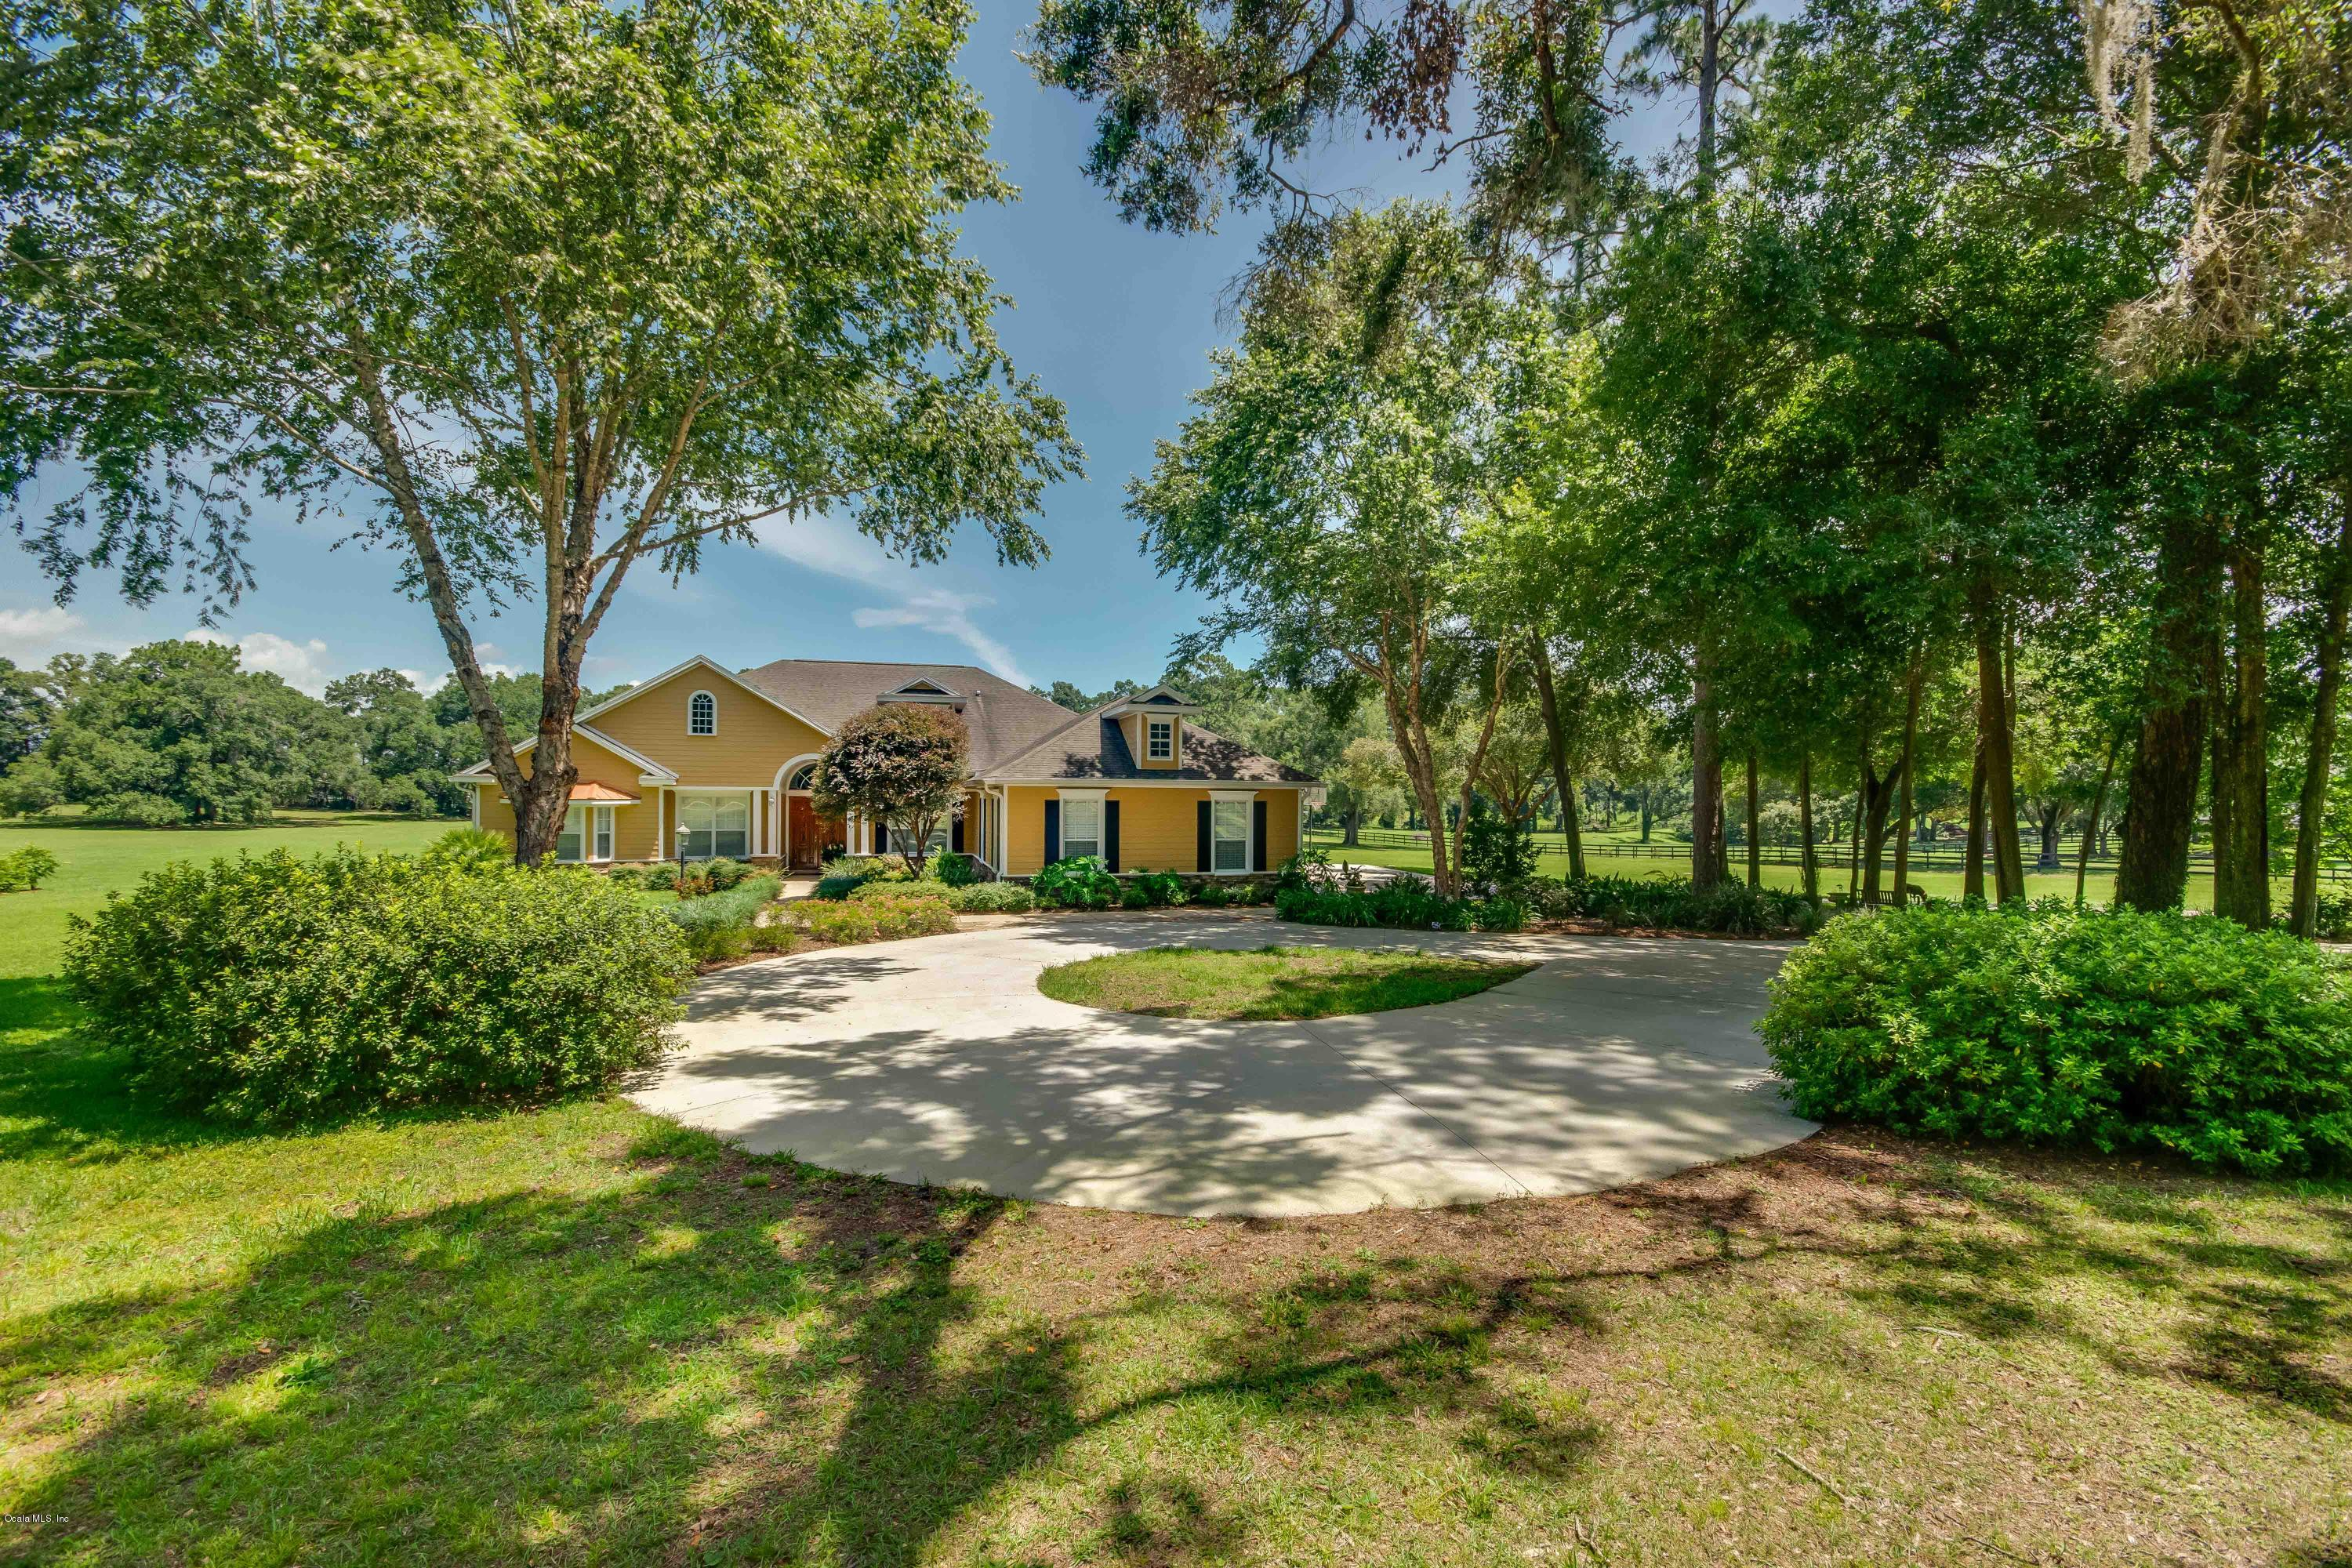 6781 NW 12TH STREET, OCALA, FL 34482